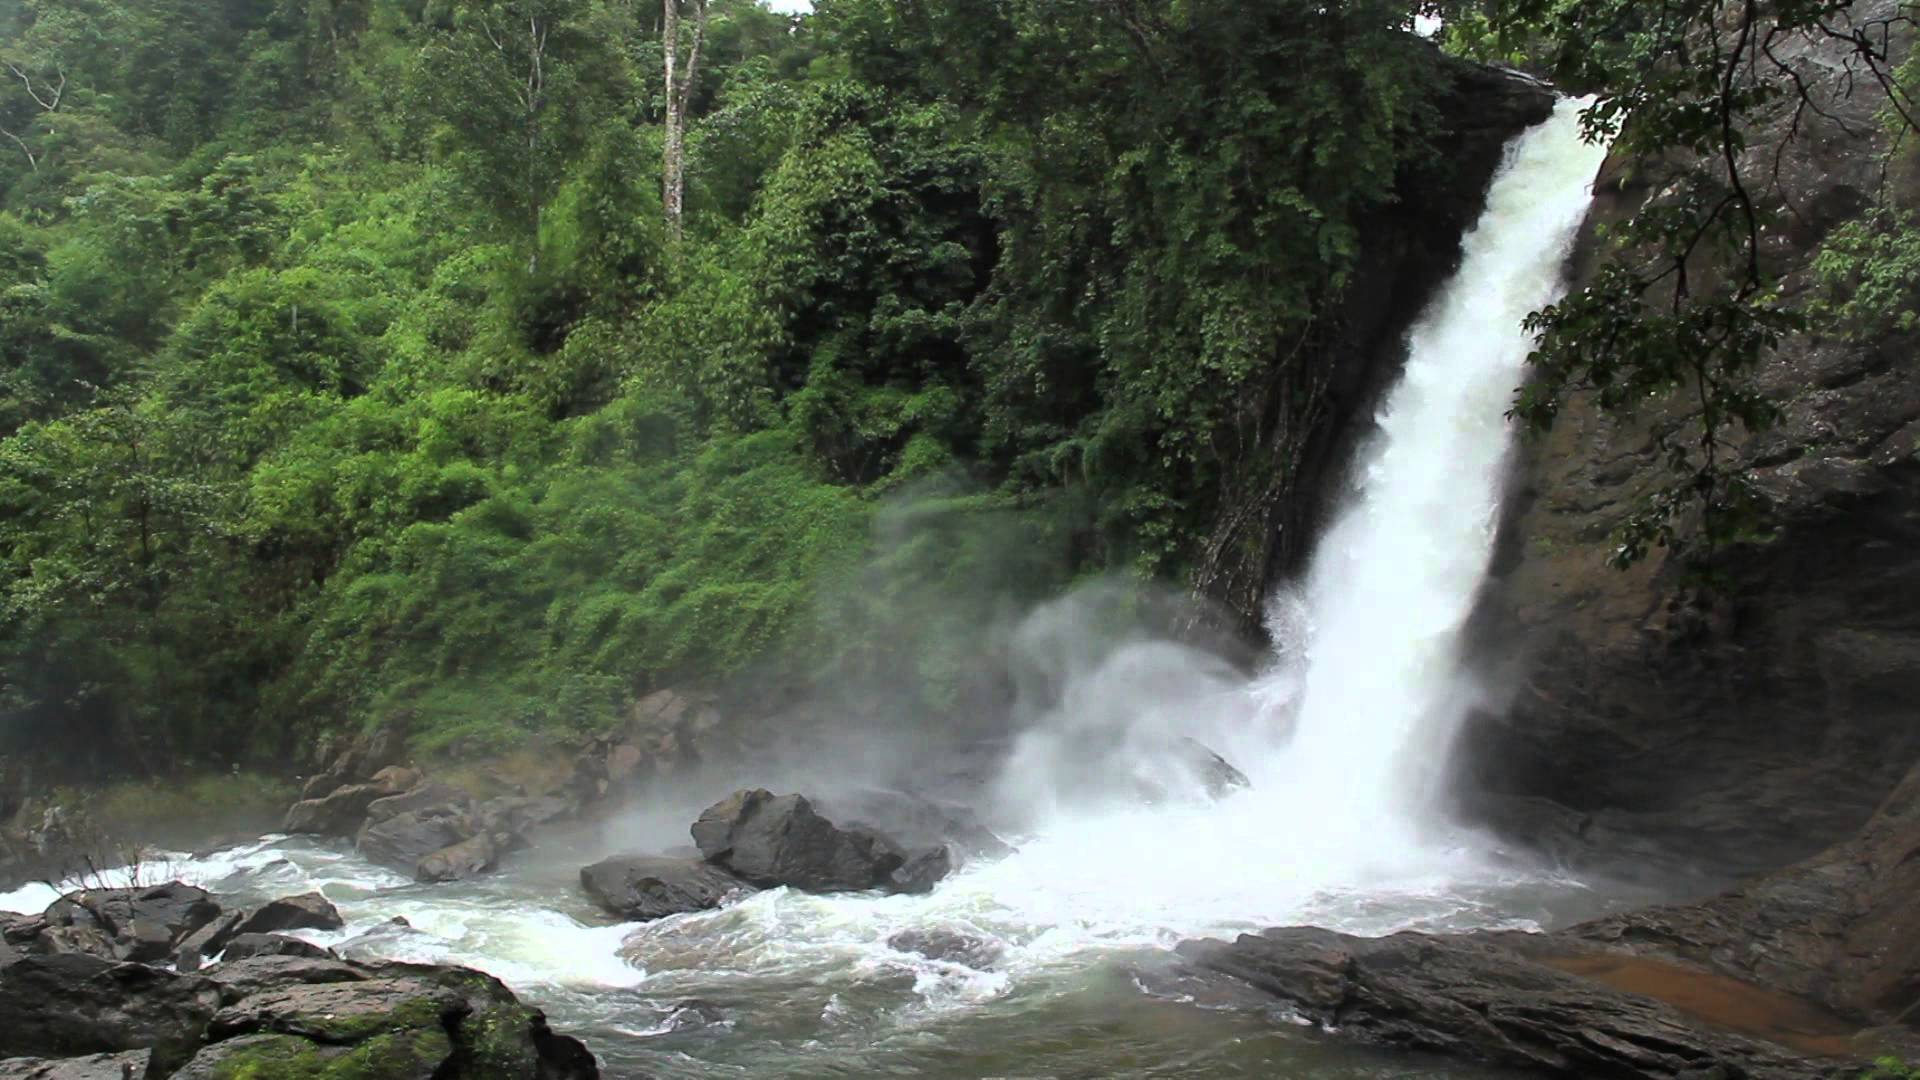 Sentinel Rock Waterfalls / Soochipara Waterfalls 13 km from Meppadi town Wayanad